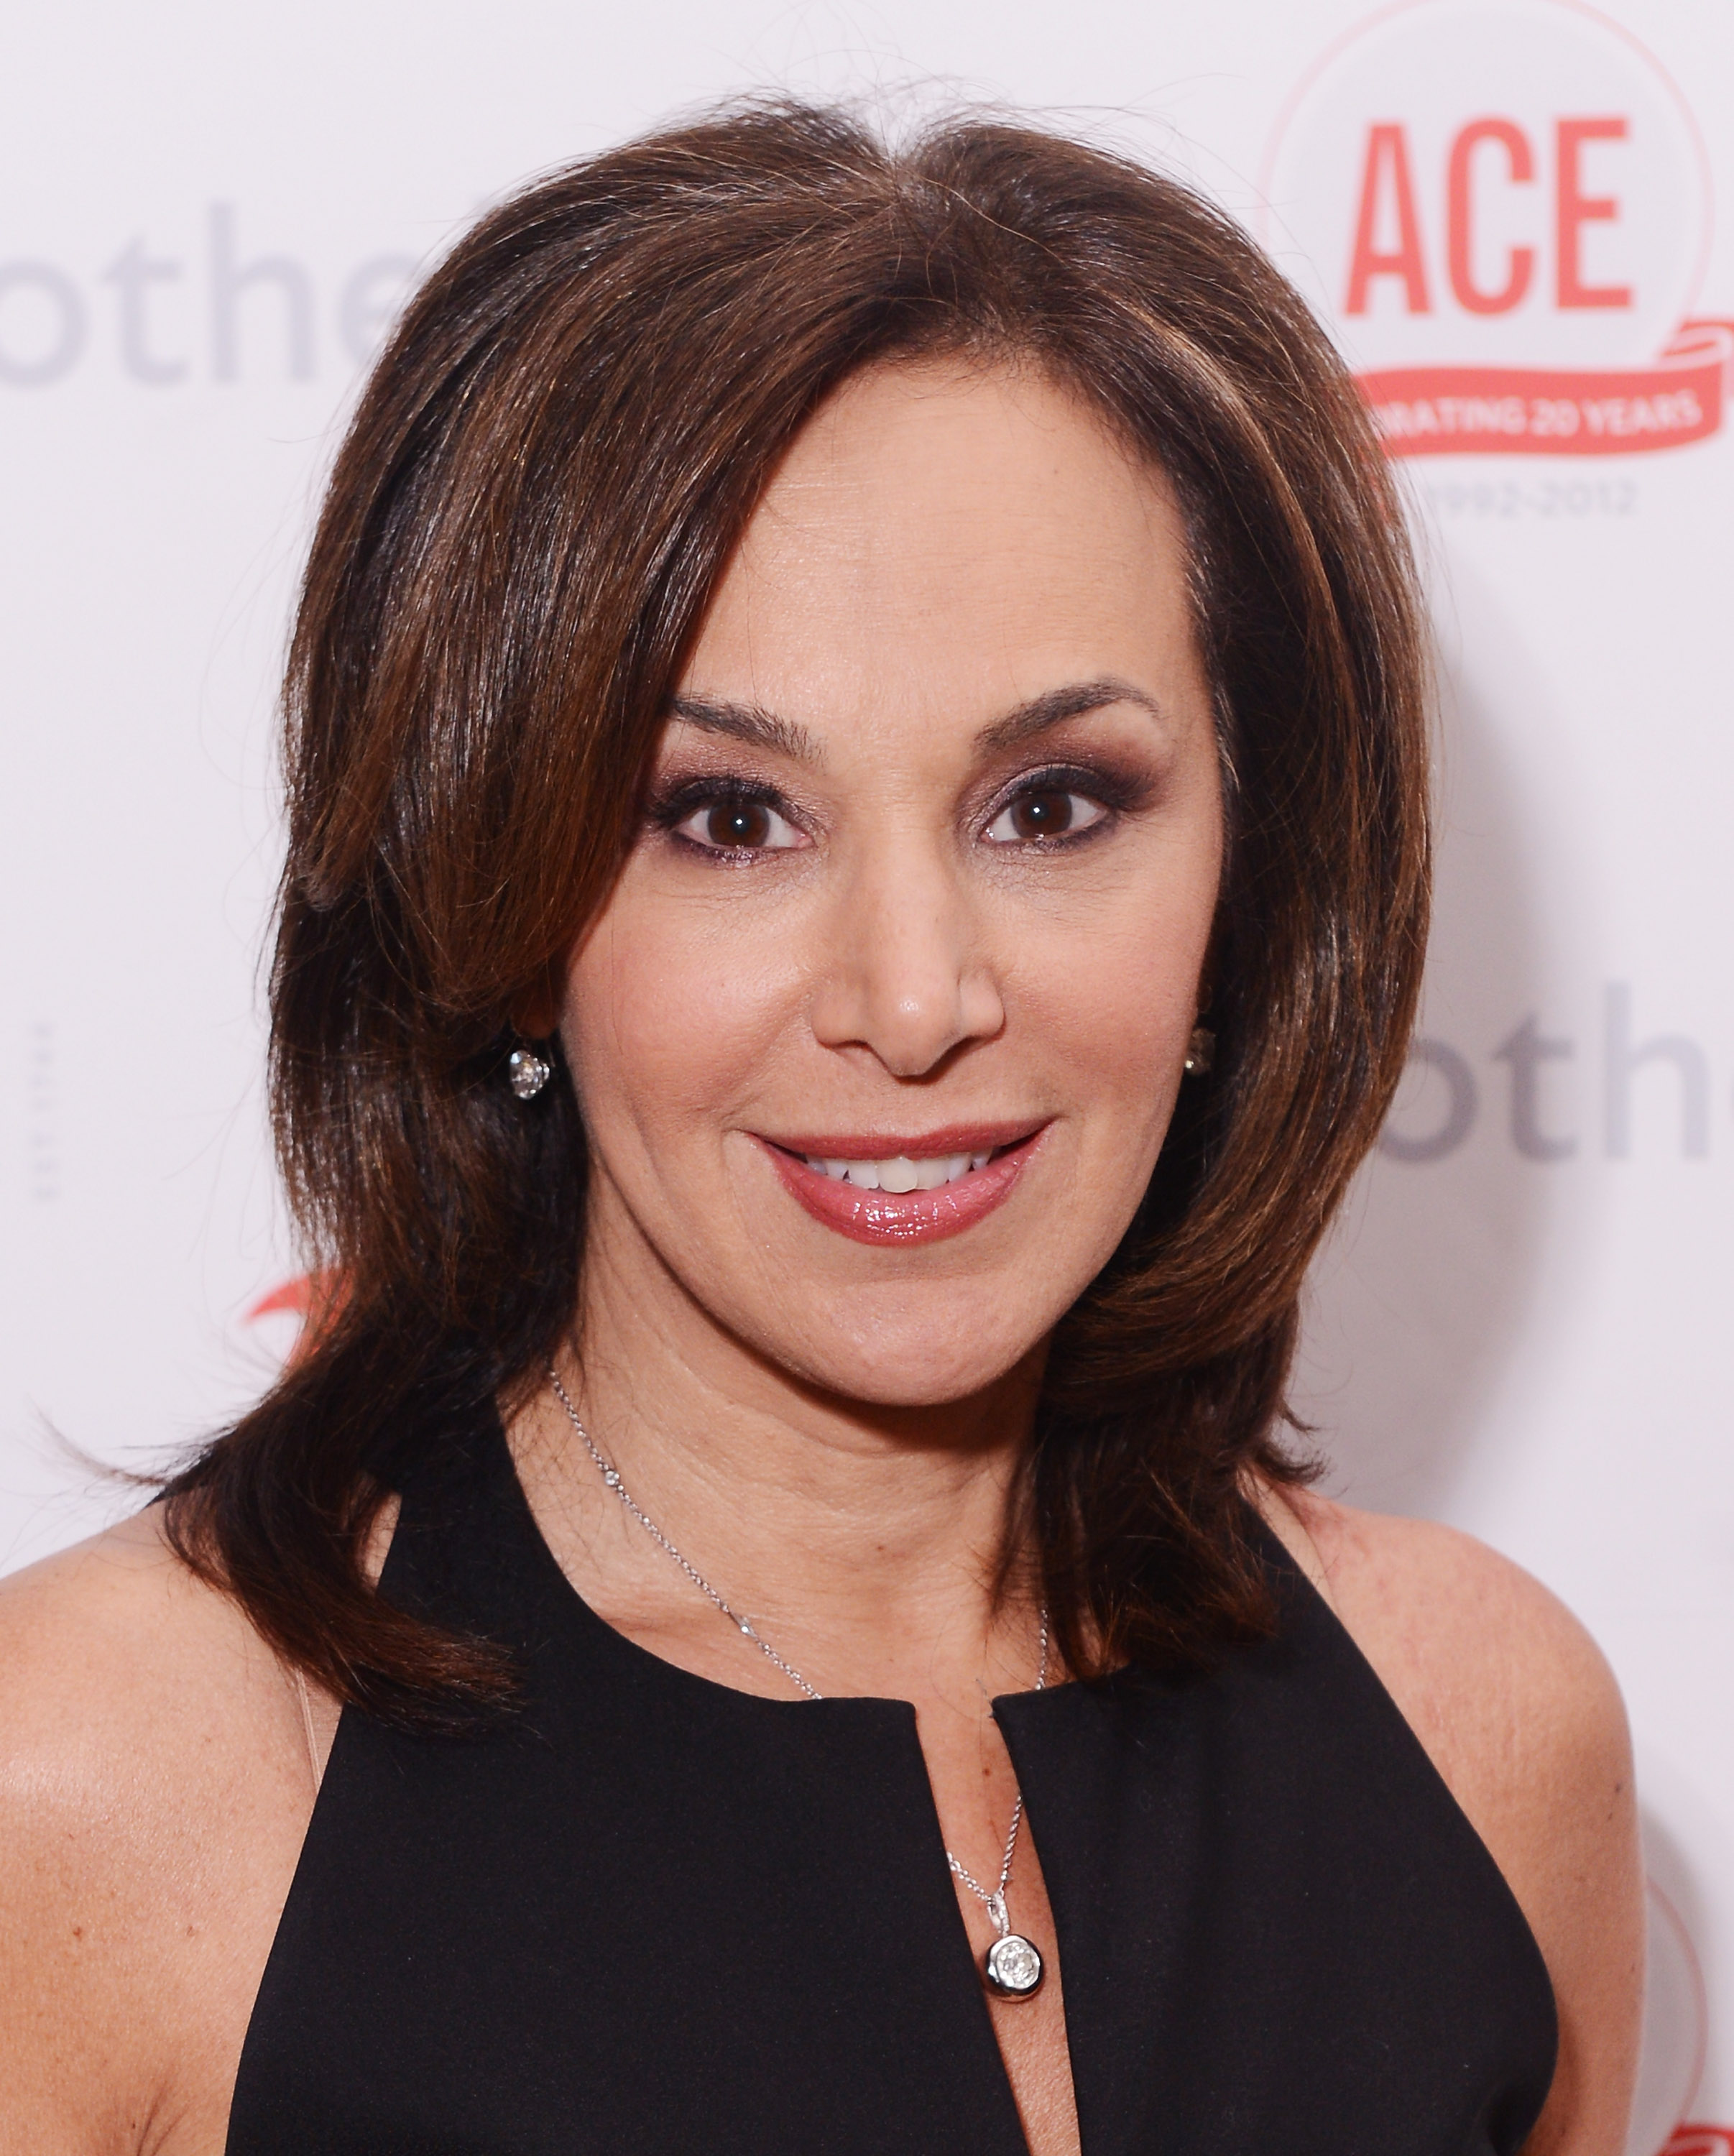 Rosanna Scotto Bio http://www.pic2fly.com/Rosanna+Scotto.html